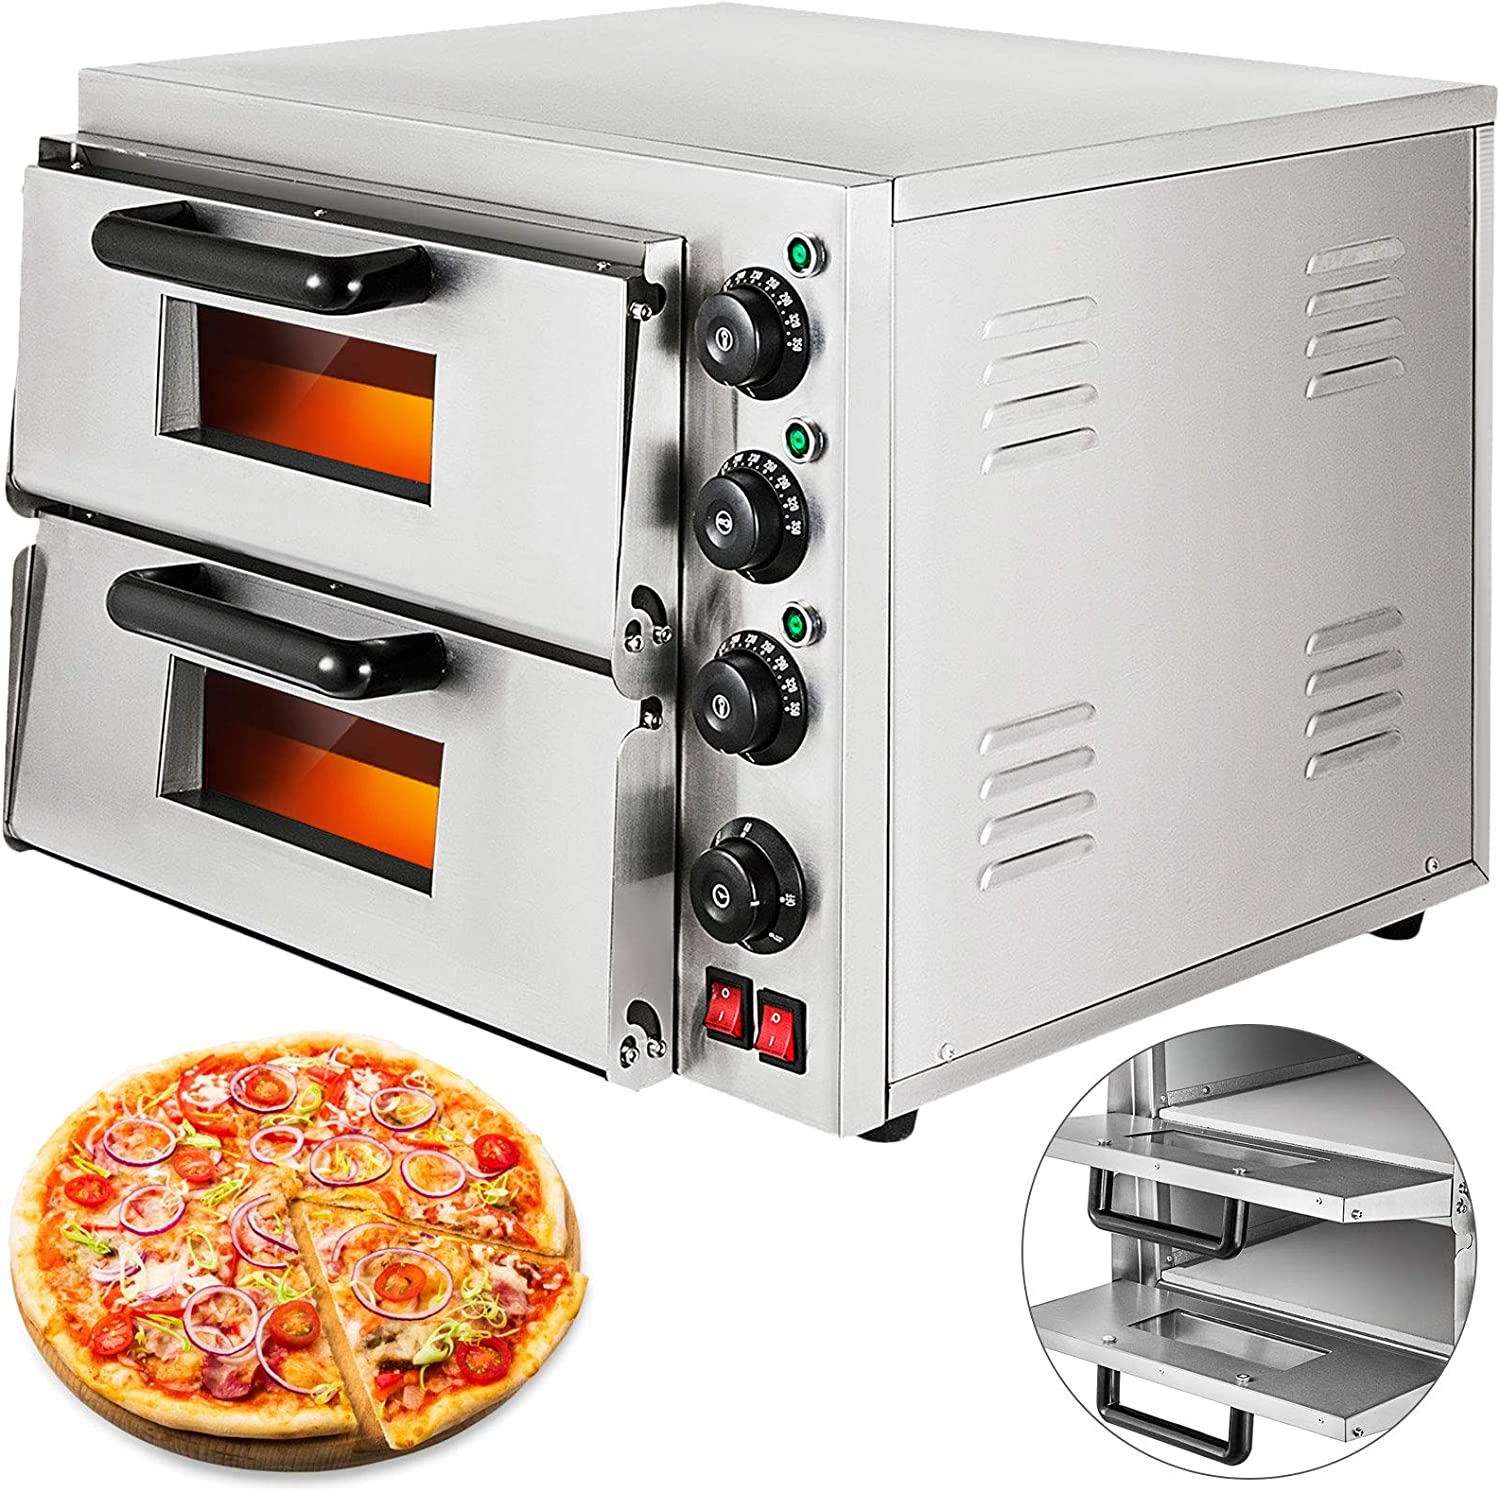 VEVOR 14'' Commercial Pizza Oven Double New products world's Minneapolis Mall highest quality popular Ov Steel Stainless